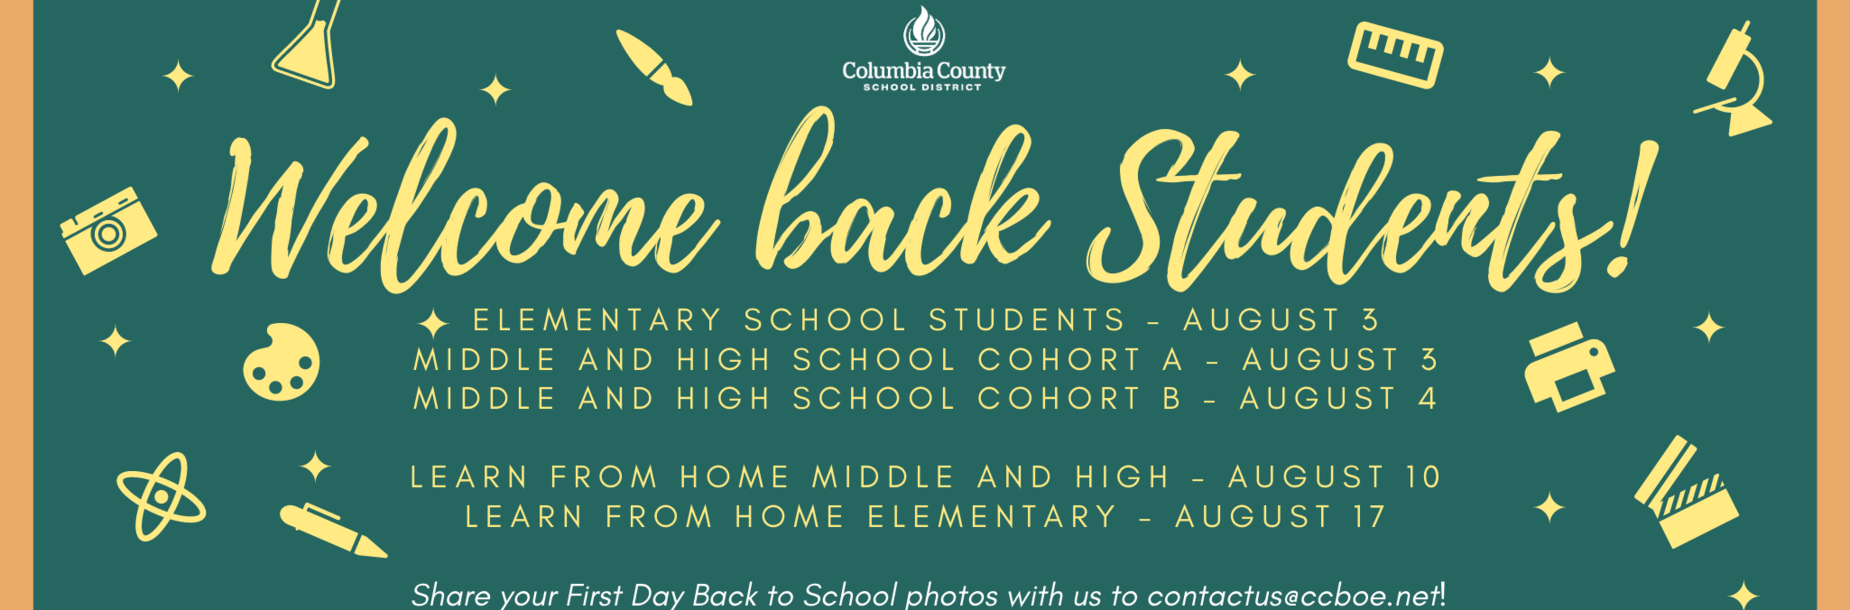 welcome back students infographic